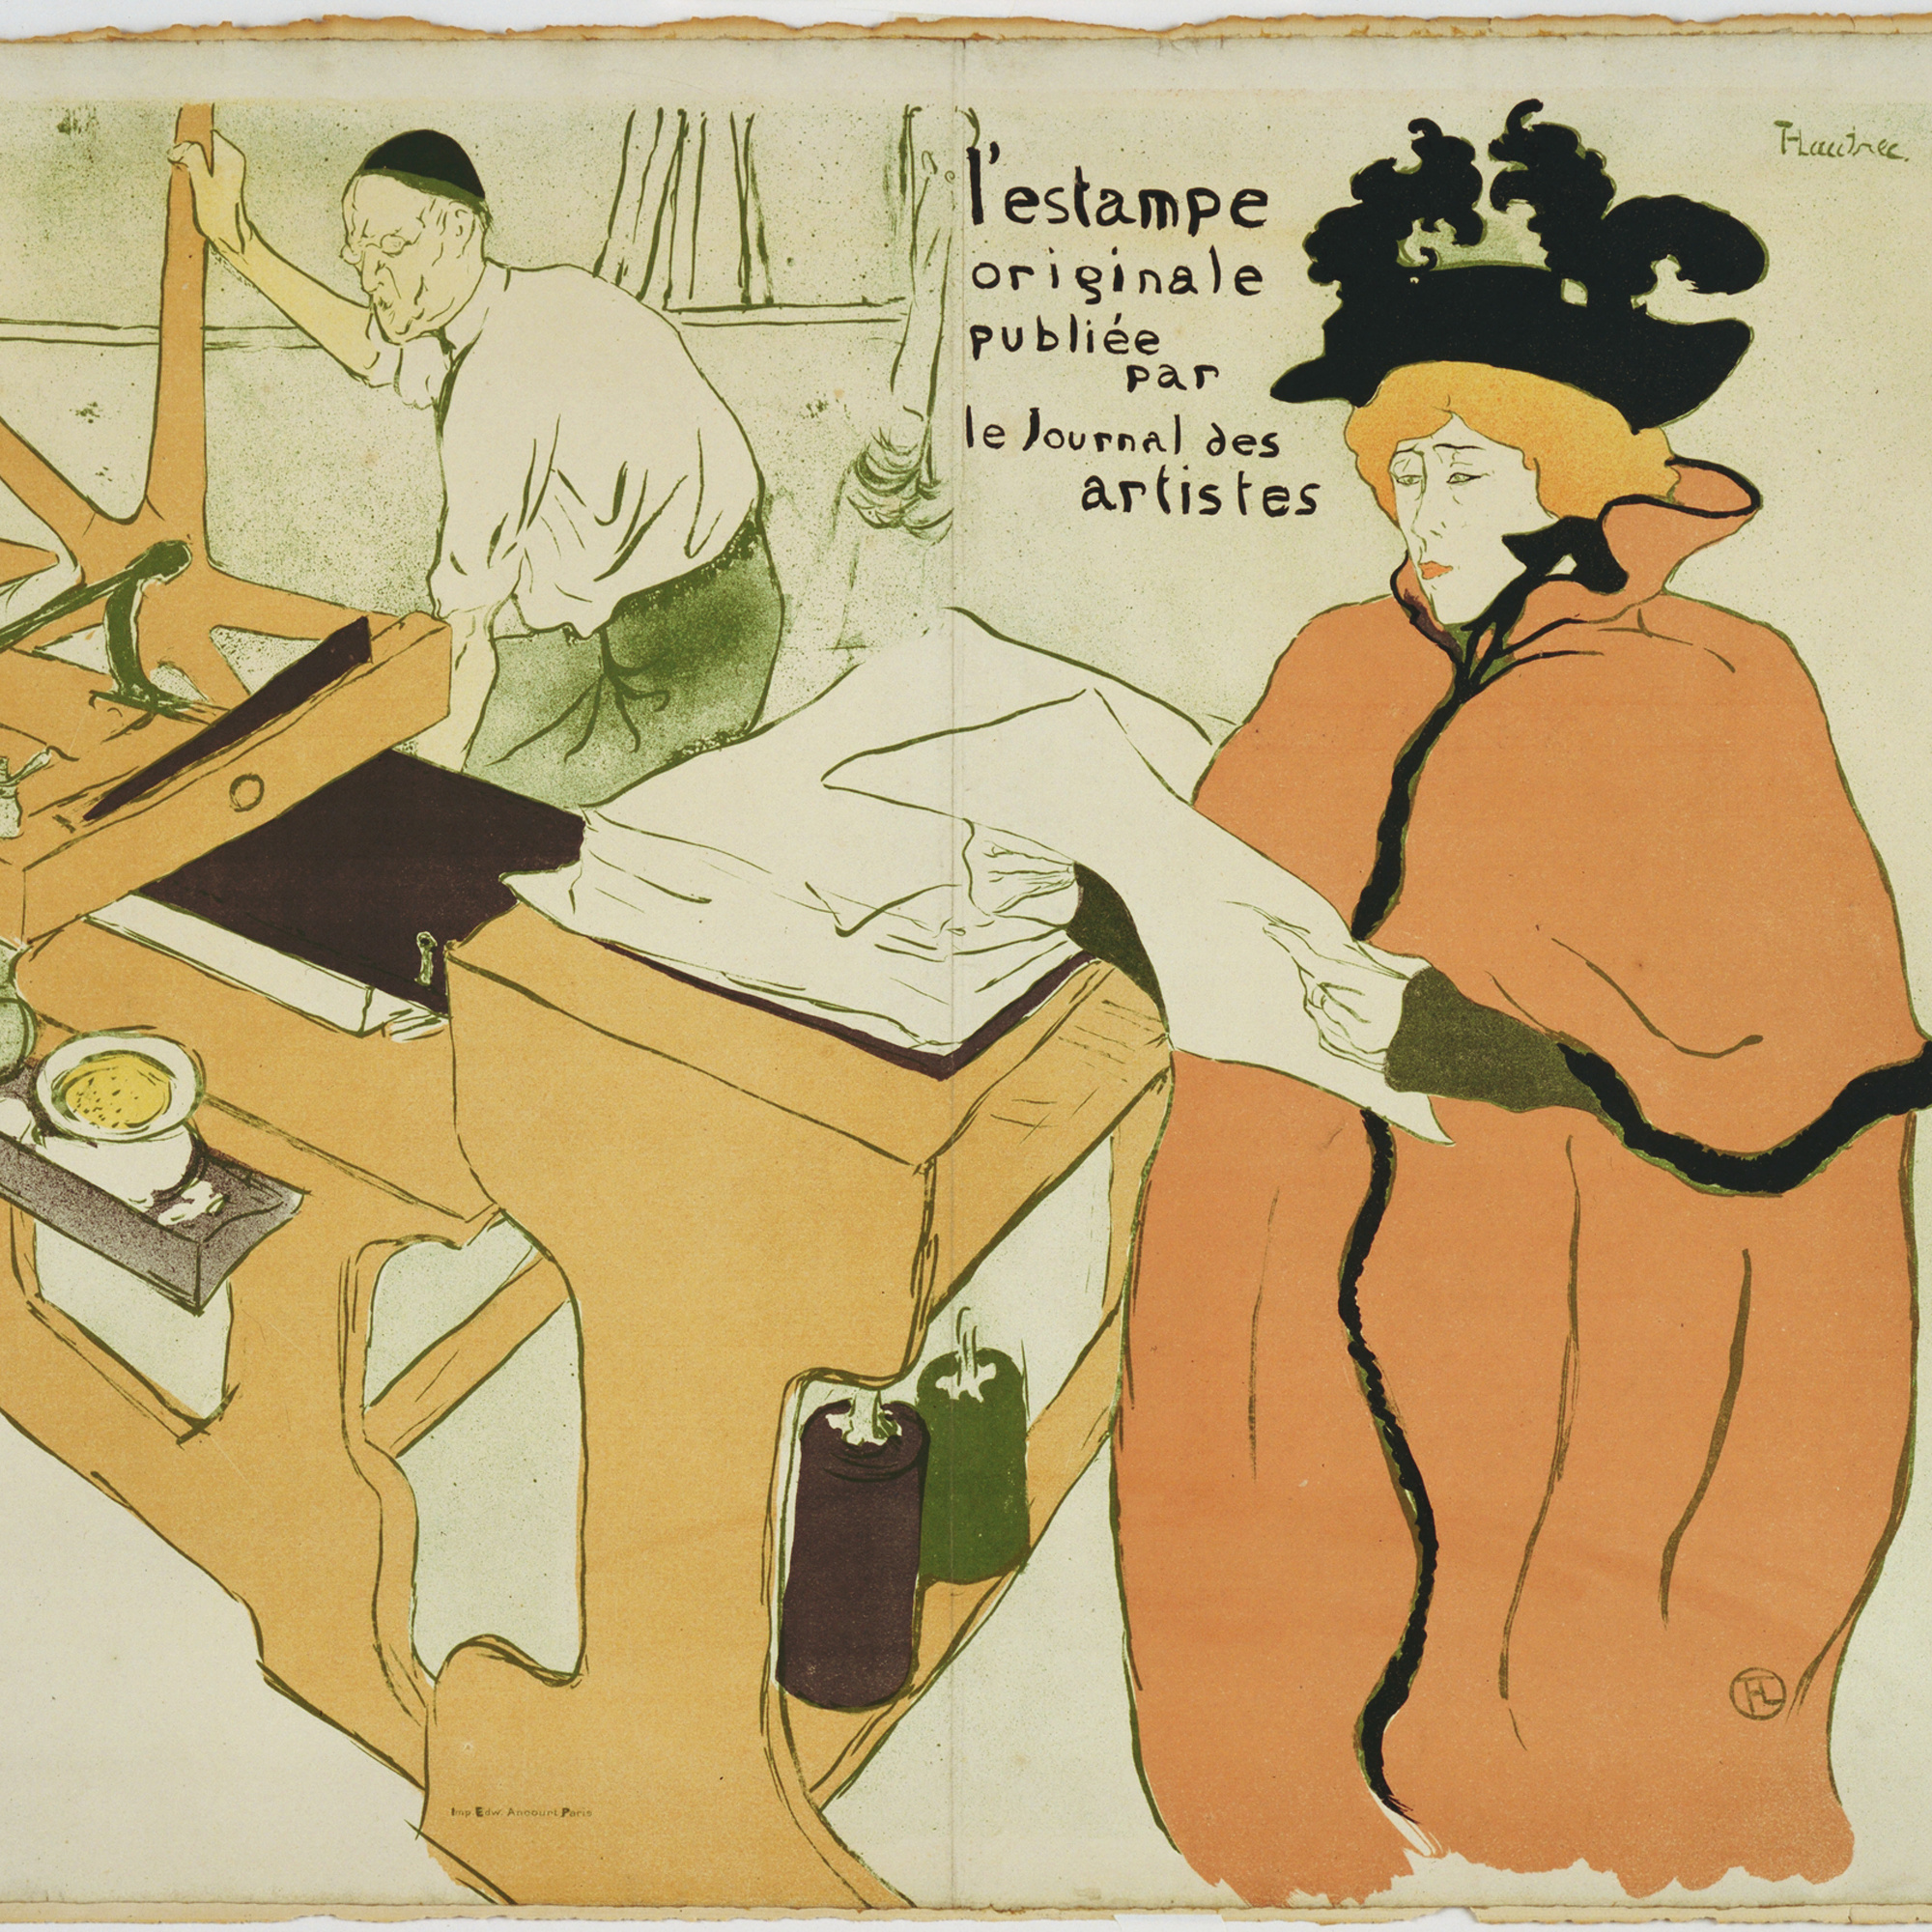 Henri de Toulouse-Lautrec. Cover for the portfolio L'Estampe originale (The Original Print). 1893. Lithograph, 22 1/4 × 25 11/16″ (56.5 × 65.2 cm). Publisher: Editions du Journal des artistes, Paris. Printer: Edward Ancourt, Paris. Edition: 100. The Museum of Modern Art, New York. Grace M. Mayer Bequest